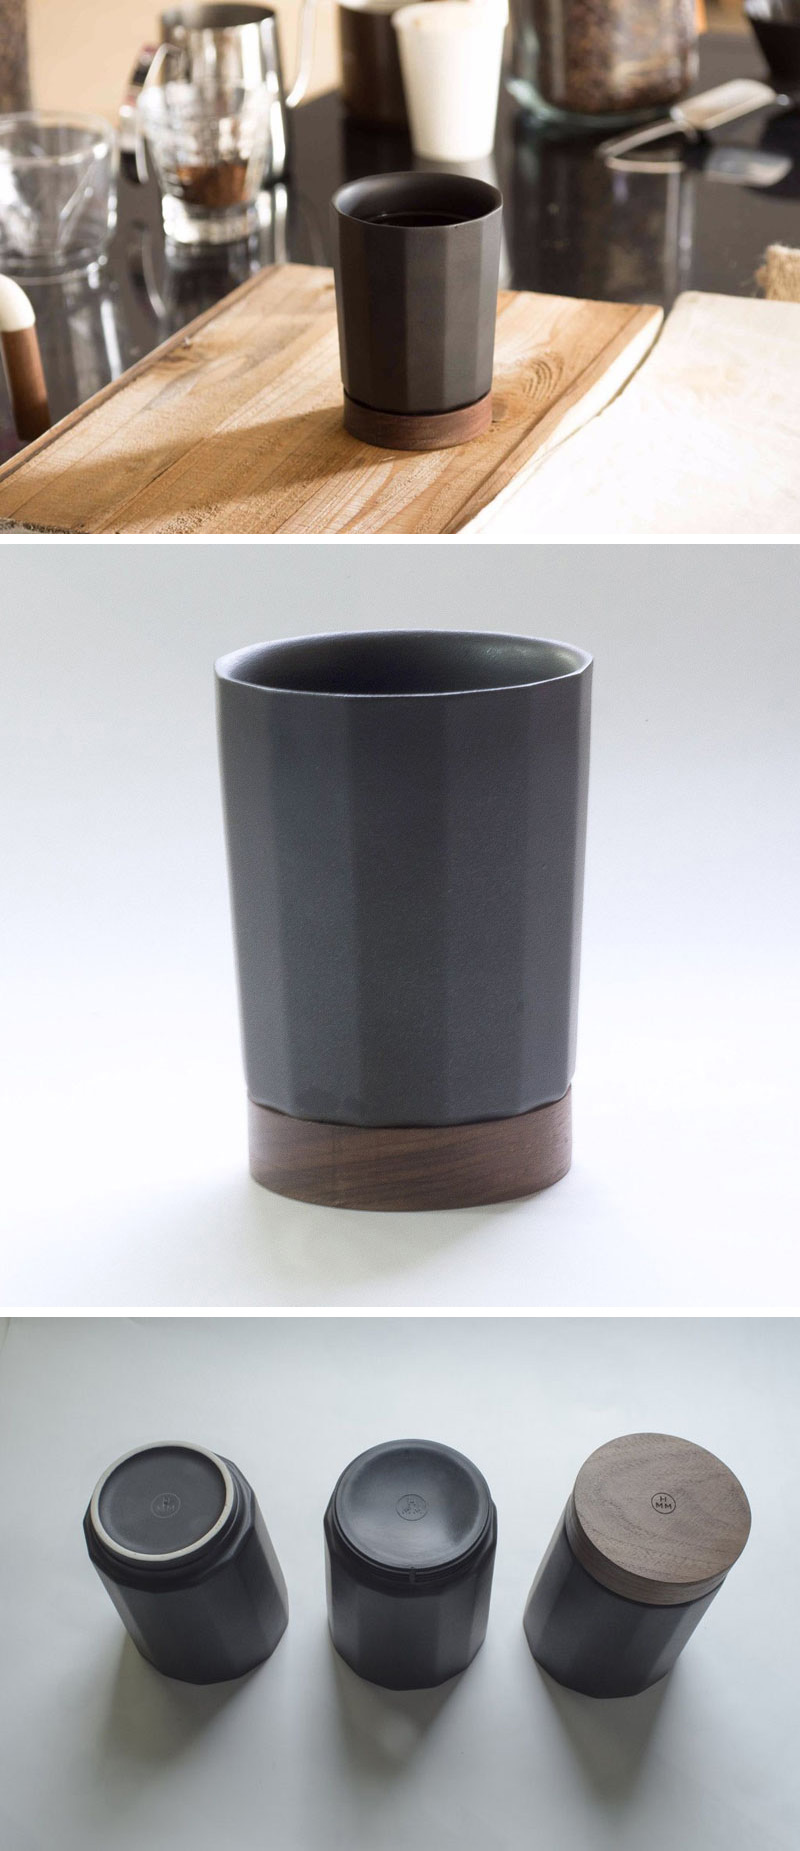 Made from matte Japanese ceramic with a walnut wood base, the Time tumbler has an angular exterior, making the cup easy and fun to hold.